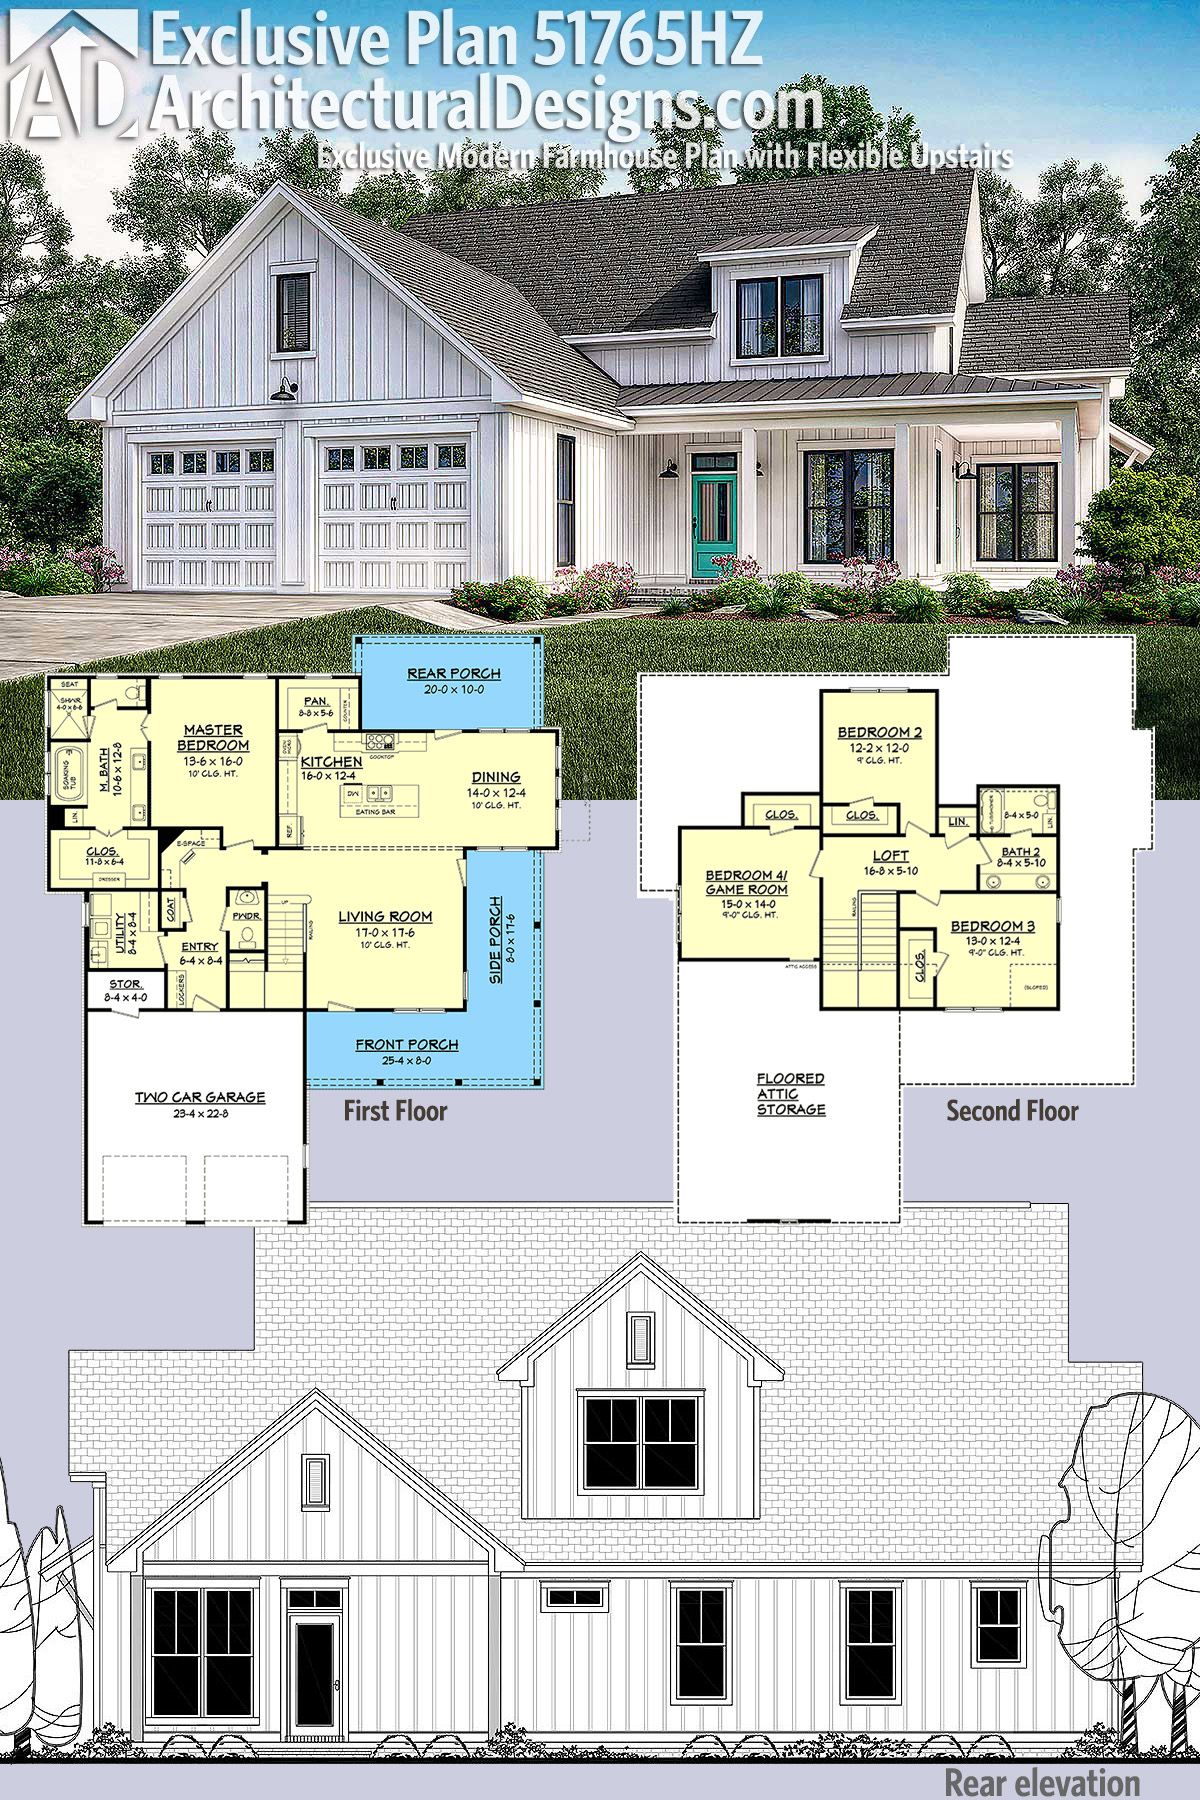 plan 51765hz exclusive modern farmhouse plan with flexible introducing architectural designs exclusive house plan 51765hz this modern farmhouse gives you 4 bedrooms